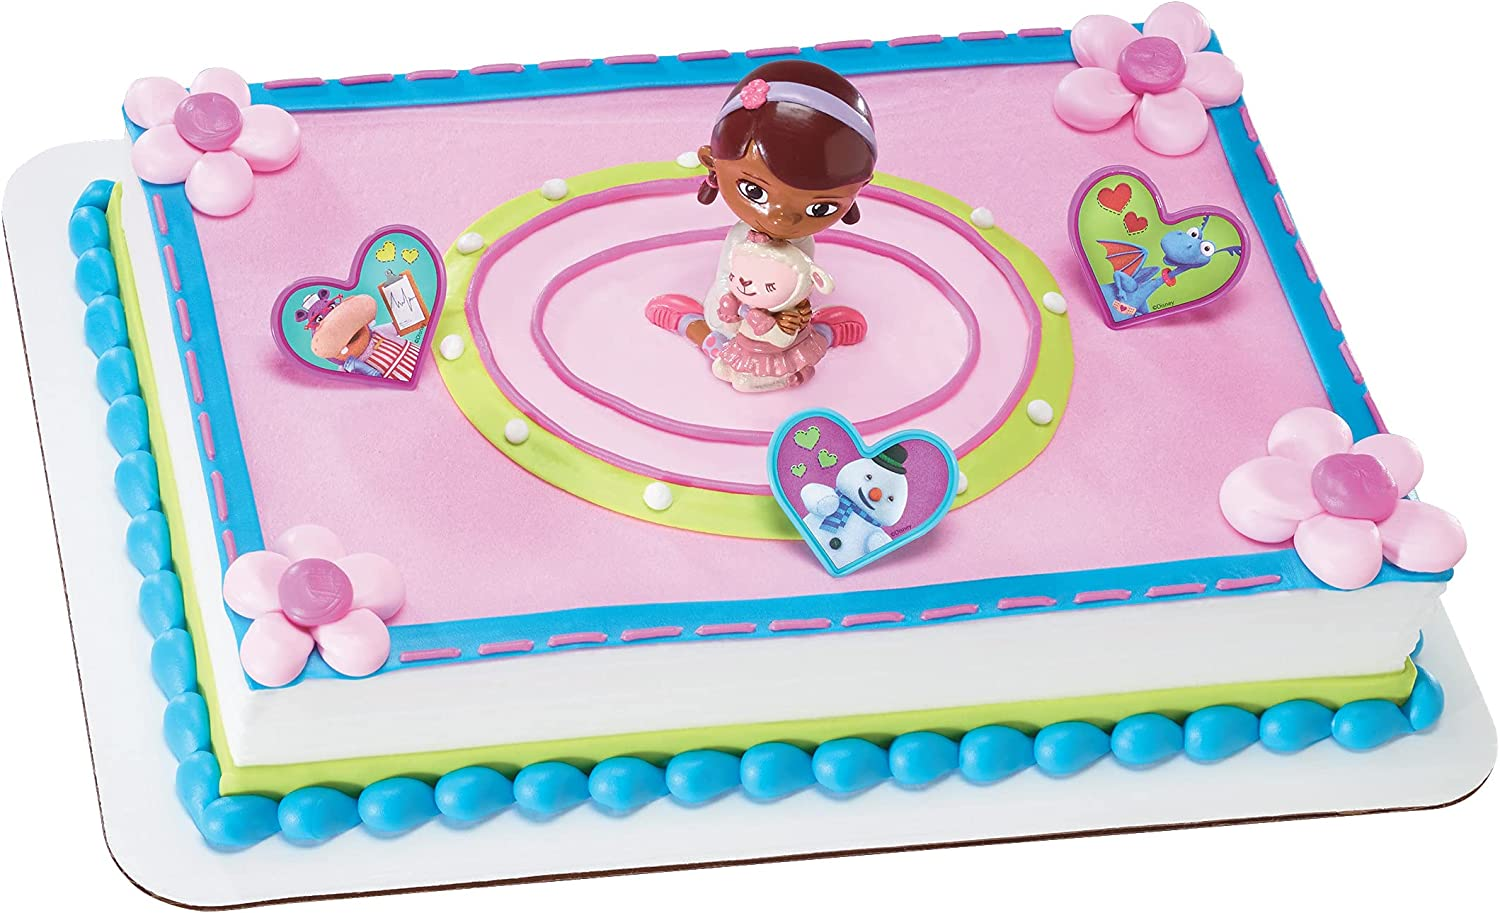 Decopac Doc McStuffins and Credence Max 70% OFF Cake Lambie Topper DecoSet